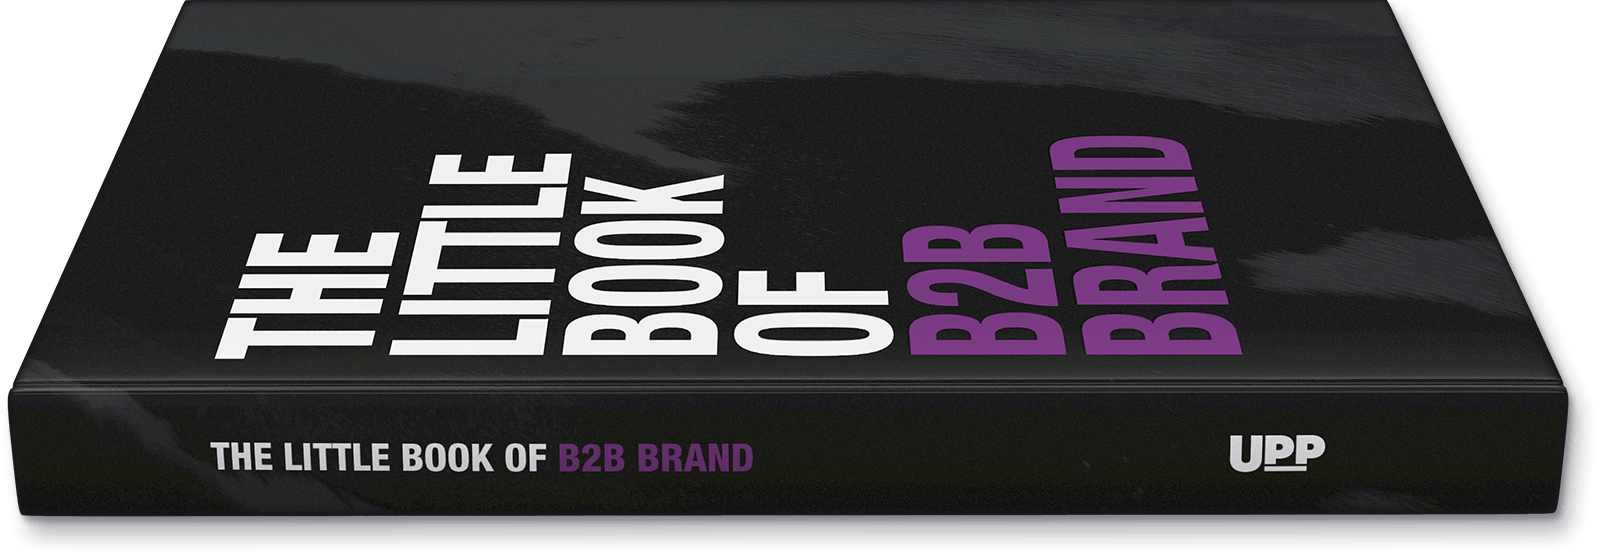 brand-book-opt